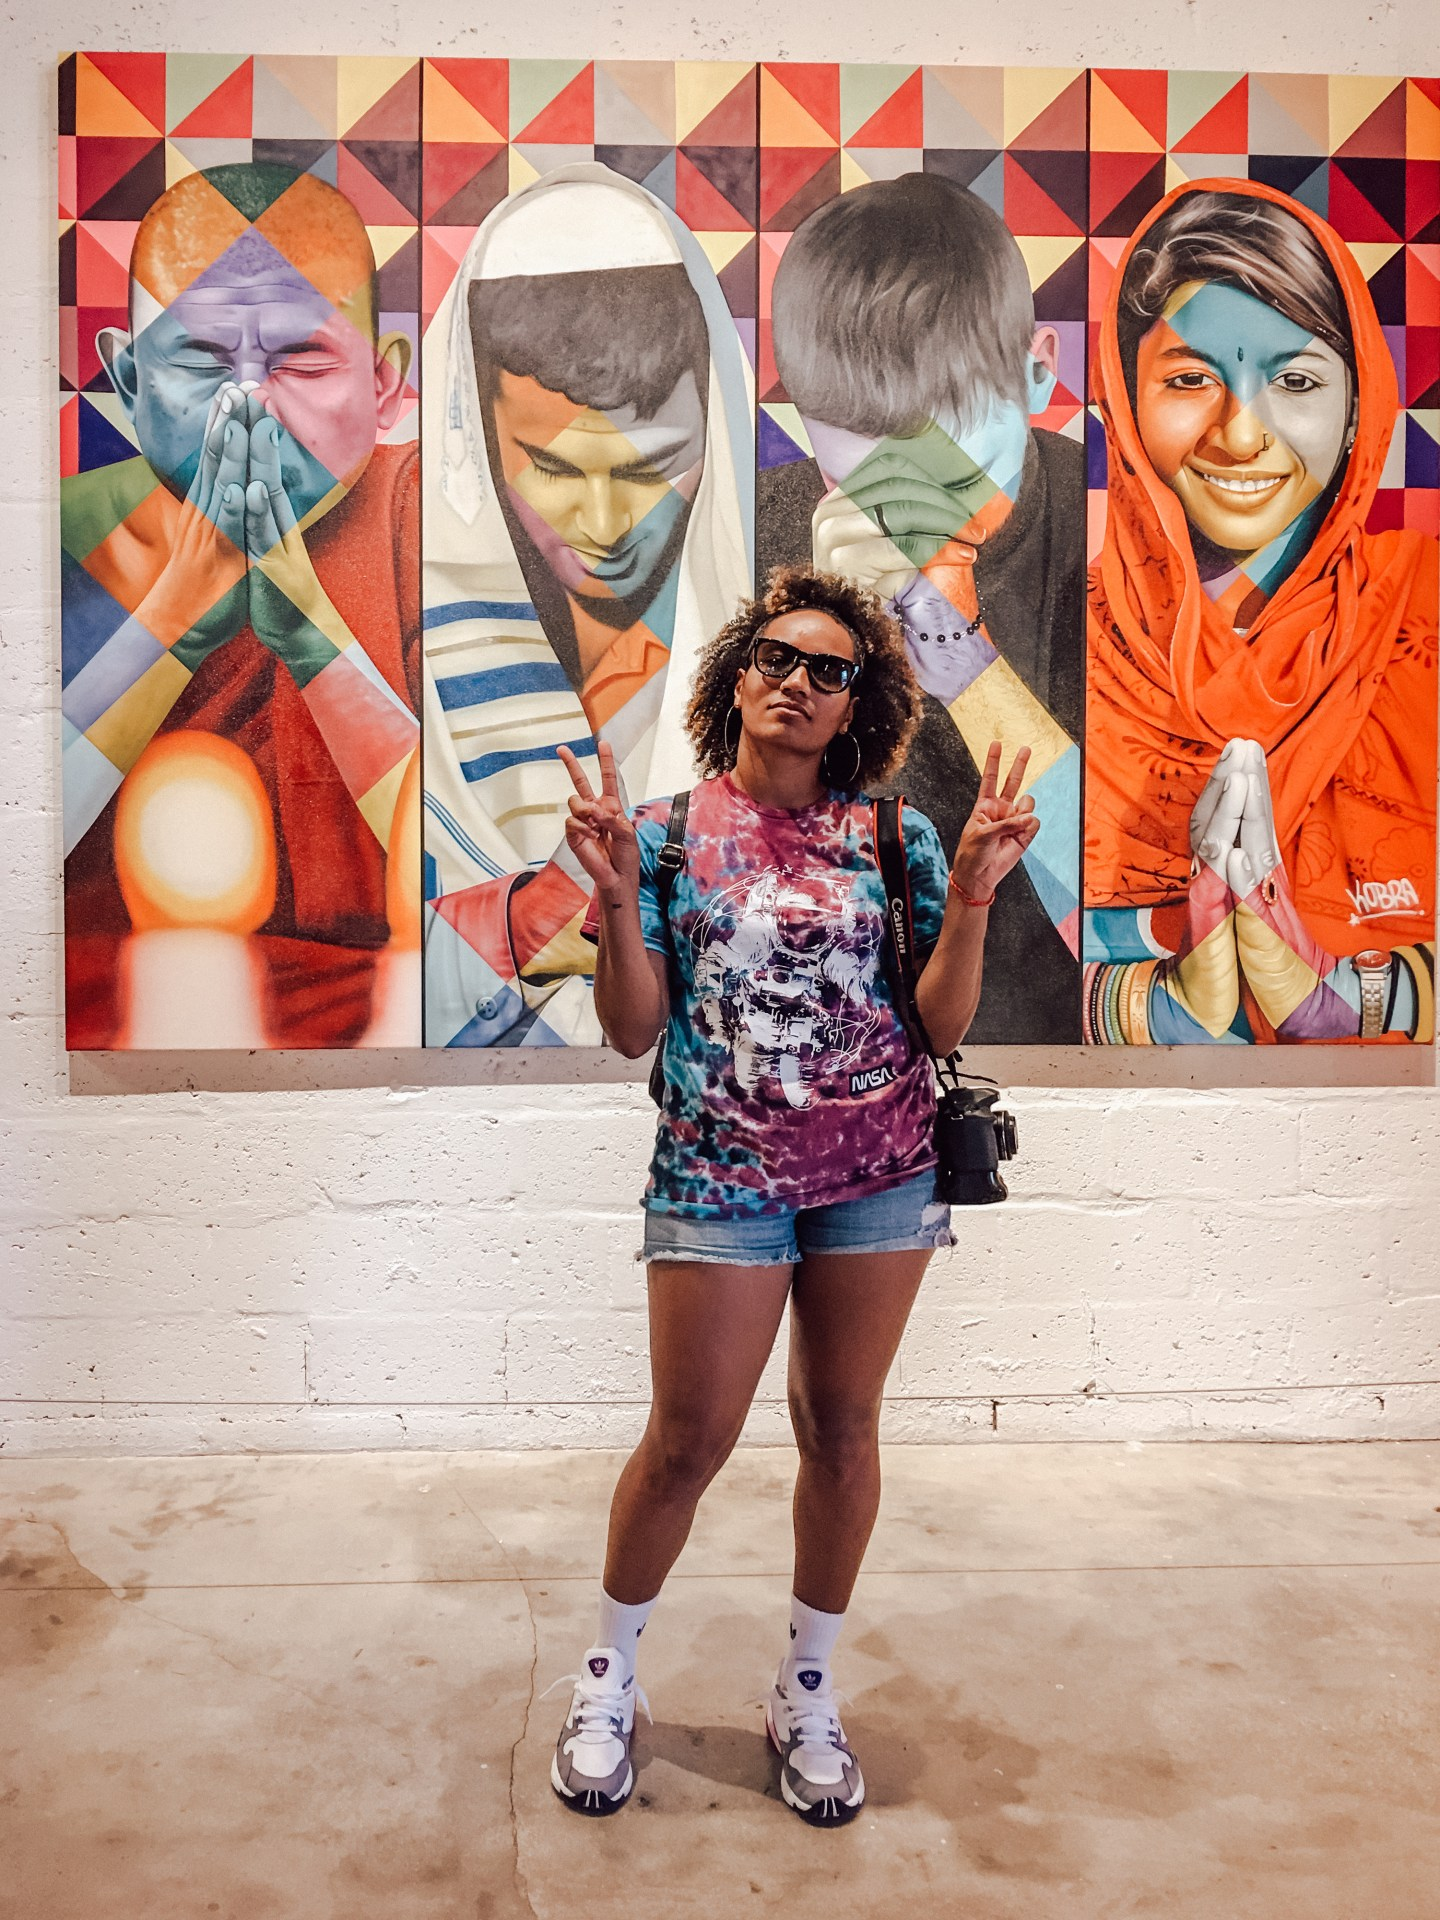 Illustrated by Sade - Wynwood Walls Art Gallery